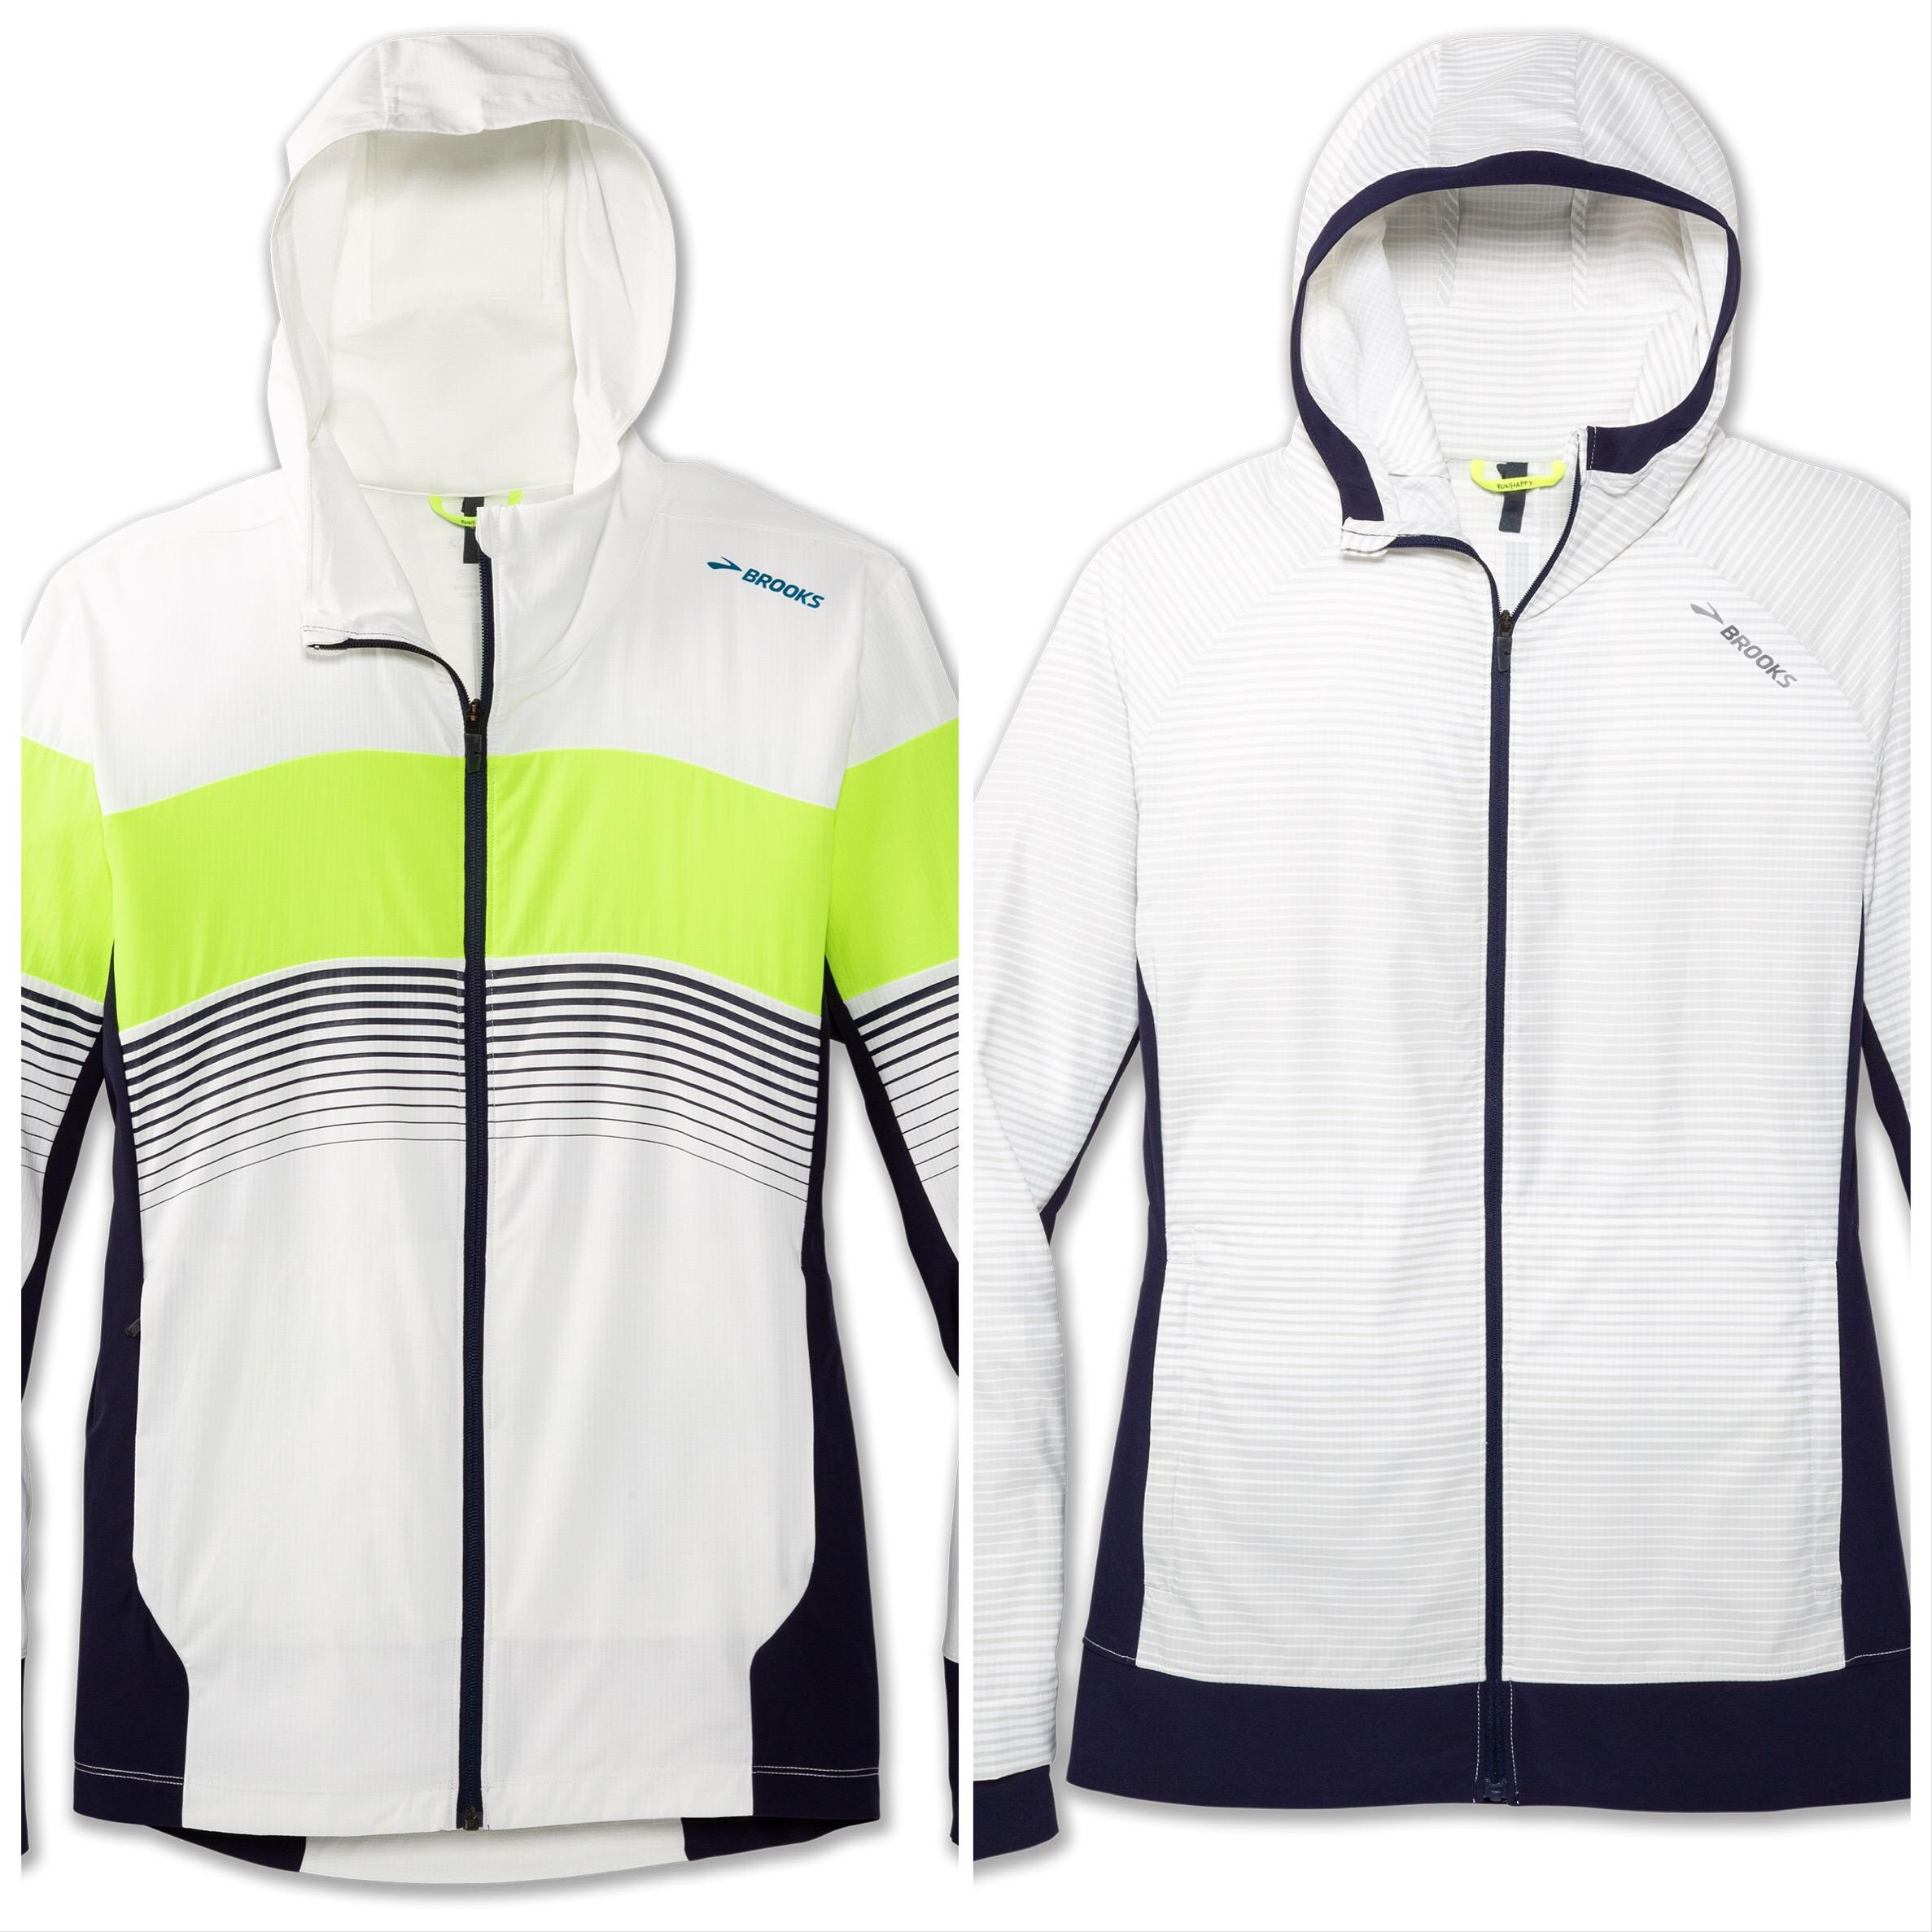 Keep those New Years resolutions going strong with these his and hers outdoor Canopy jackets from Brooks Running.{ } Breathable wind- and water-resistant fabric keeps you dry when the weather turns with a fitted and storable hood that quickly snaps in place. Price $120. (Image: Brooks){ }